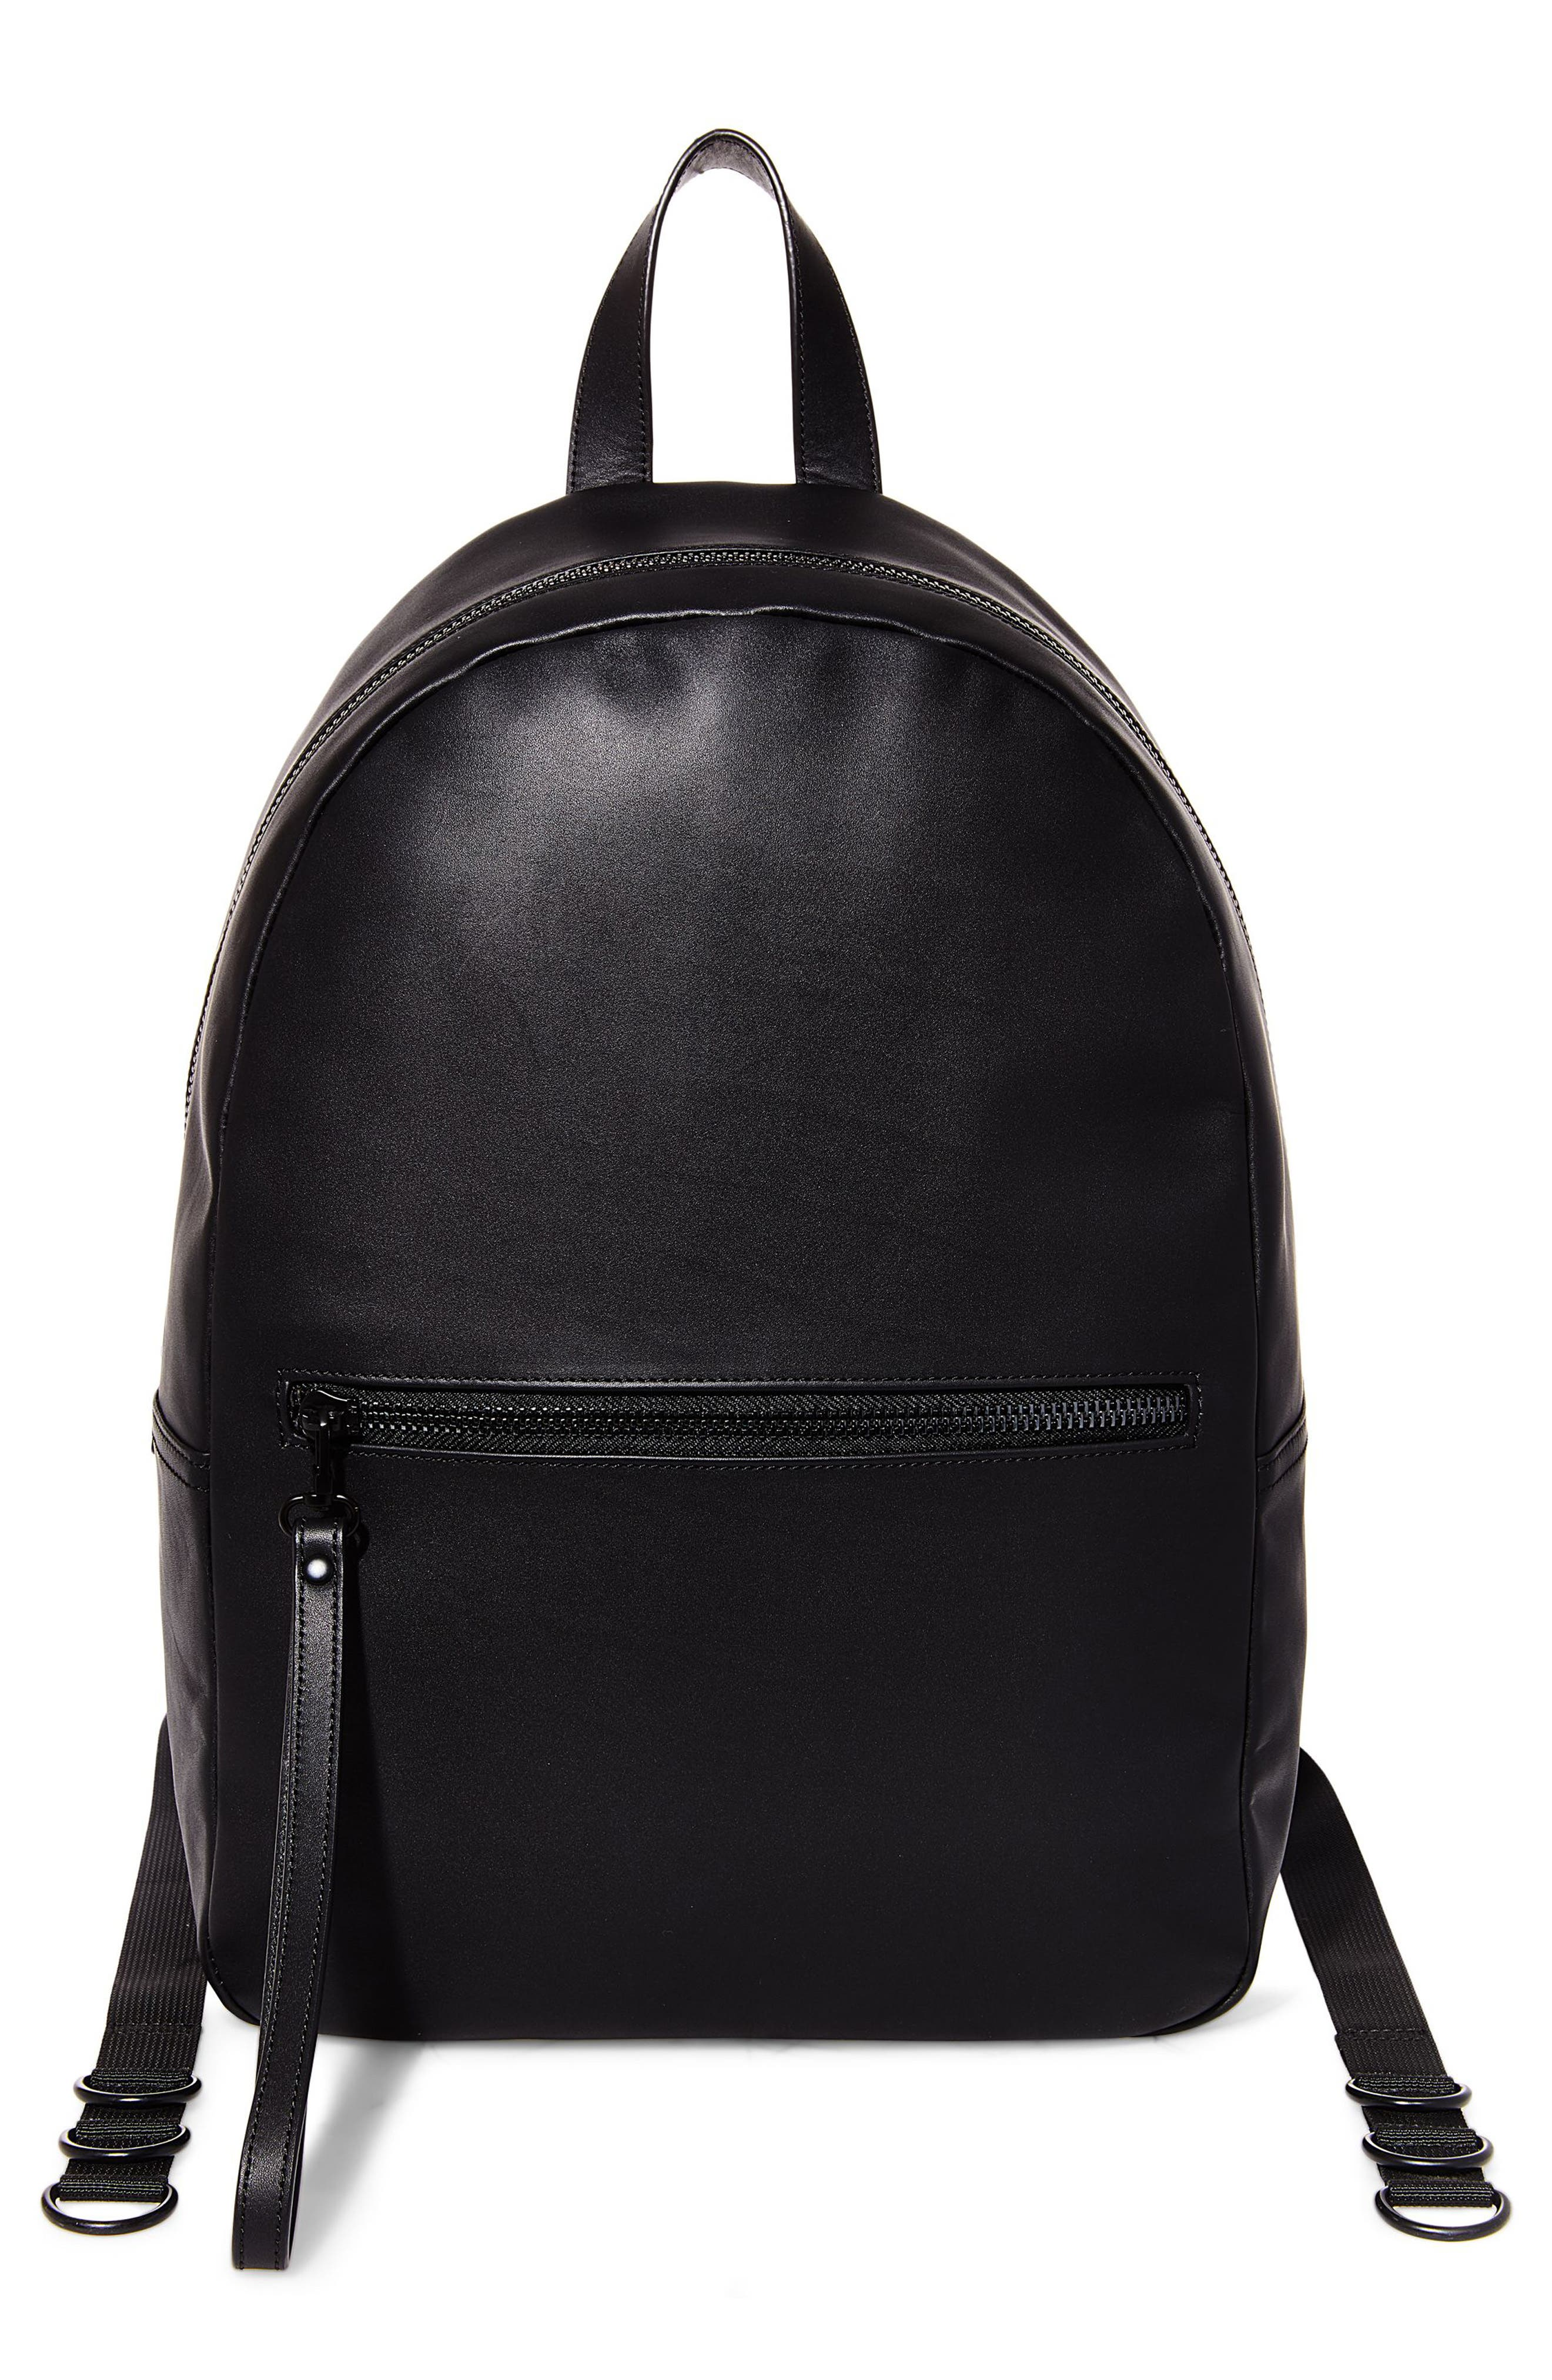 GQ x Steve Madden Leather Backpack,                             Main thumbnail 1, color,                             Black